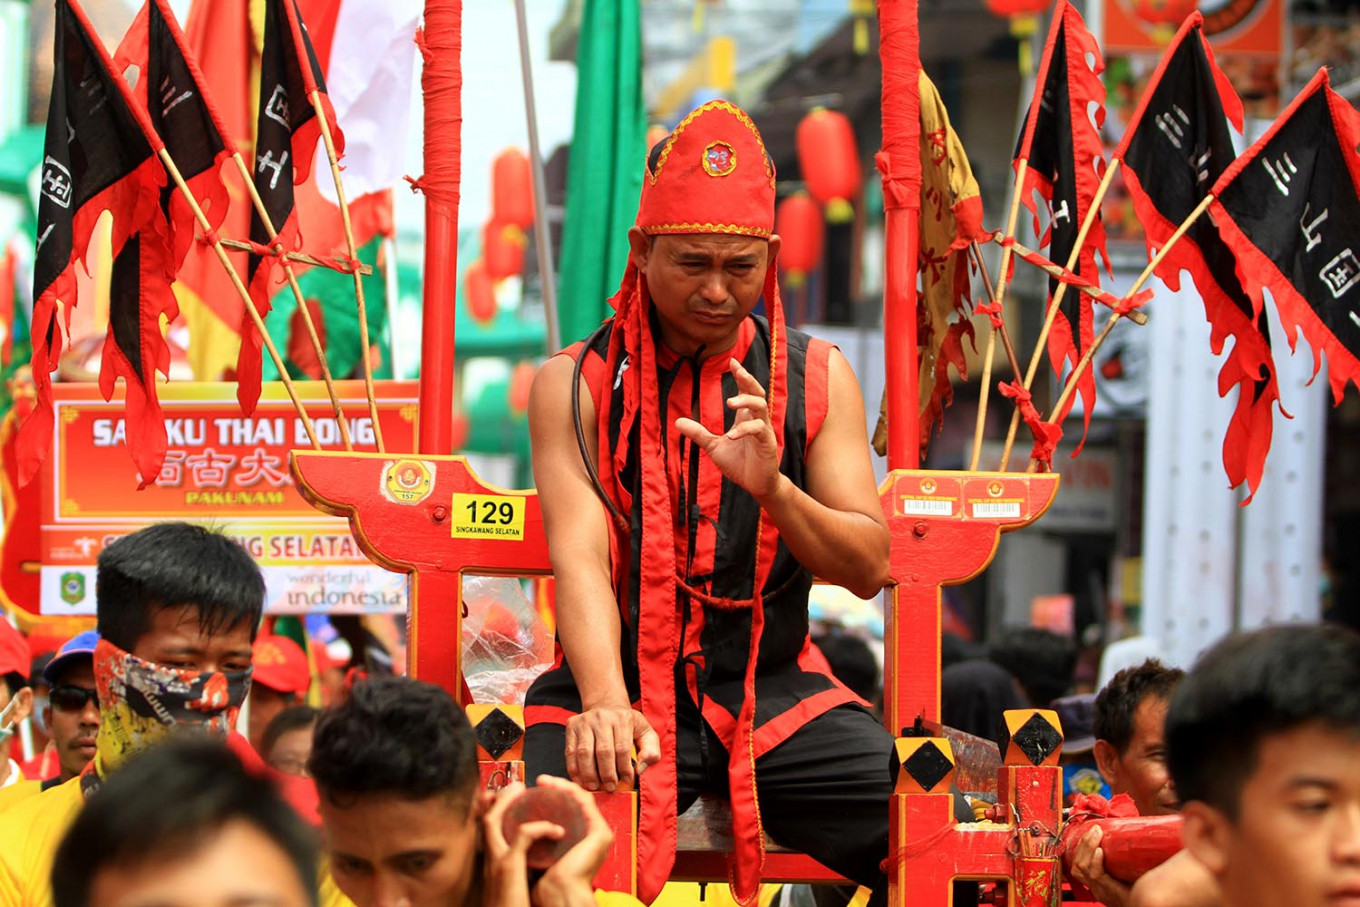 A tatung shows off his ability of sitting on a machete during the parade. JP/HS Putra